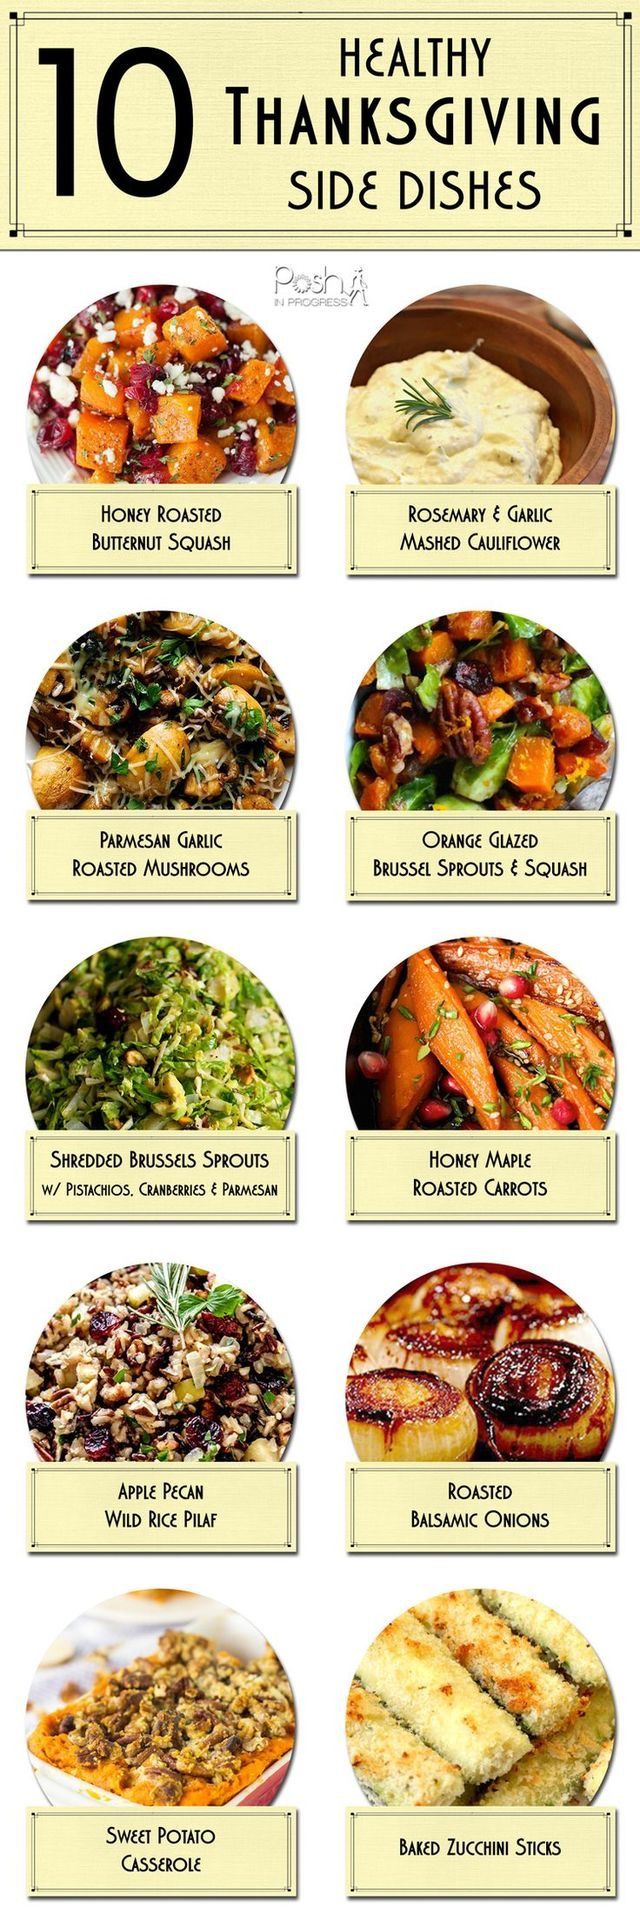 10 Healthy thanks giving side dishes.